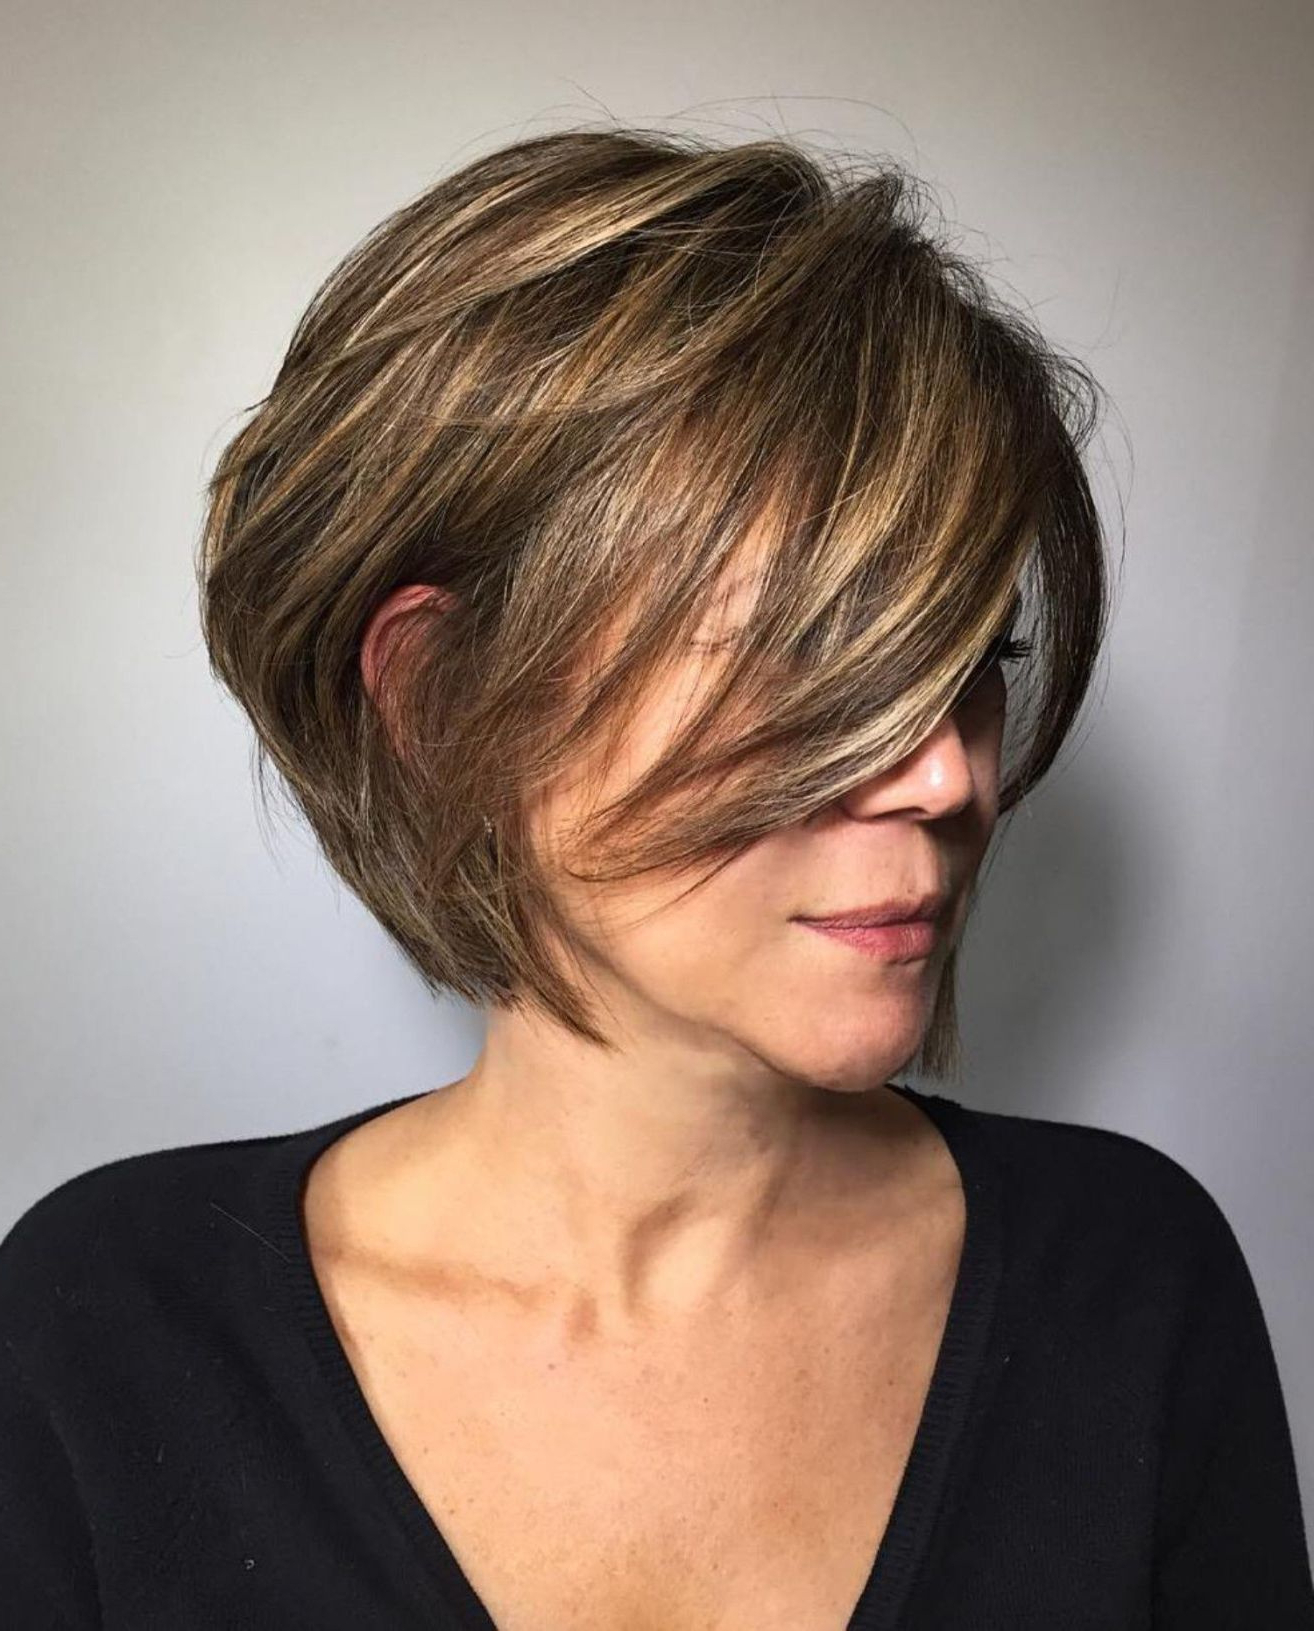 2020 Choppy Side Parted Bob Hairstyles Intended For Fashion : Intriguing Choppy Side Parted Pixie Bob Hairstyles Photo (Gallery 3 of 20)